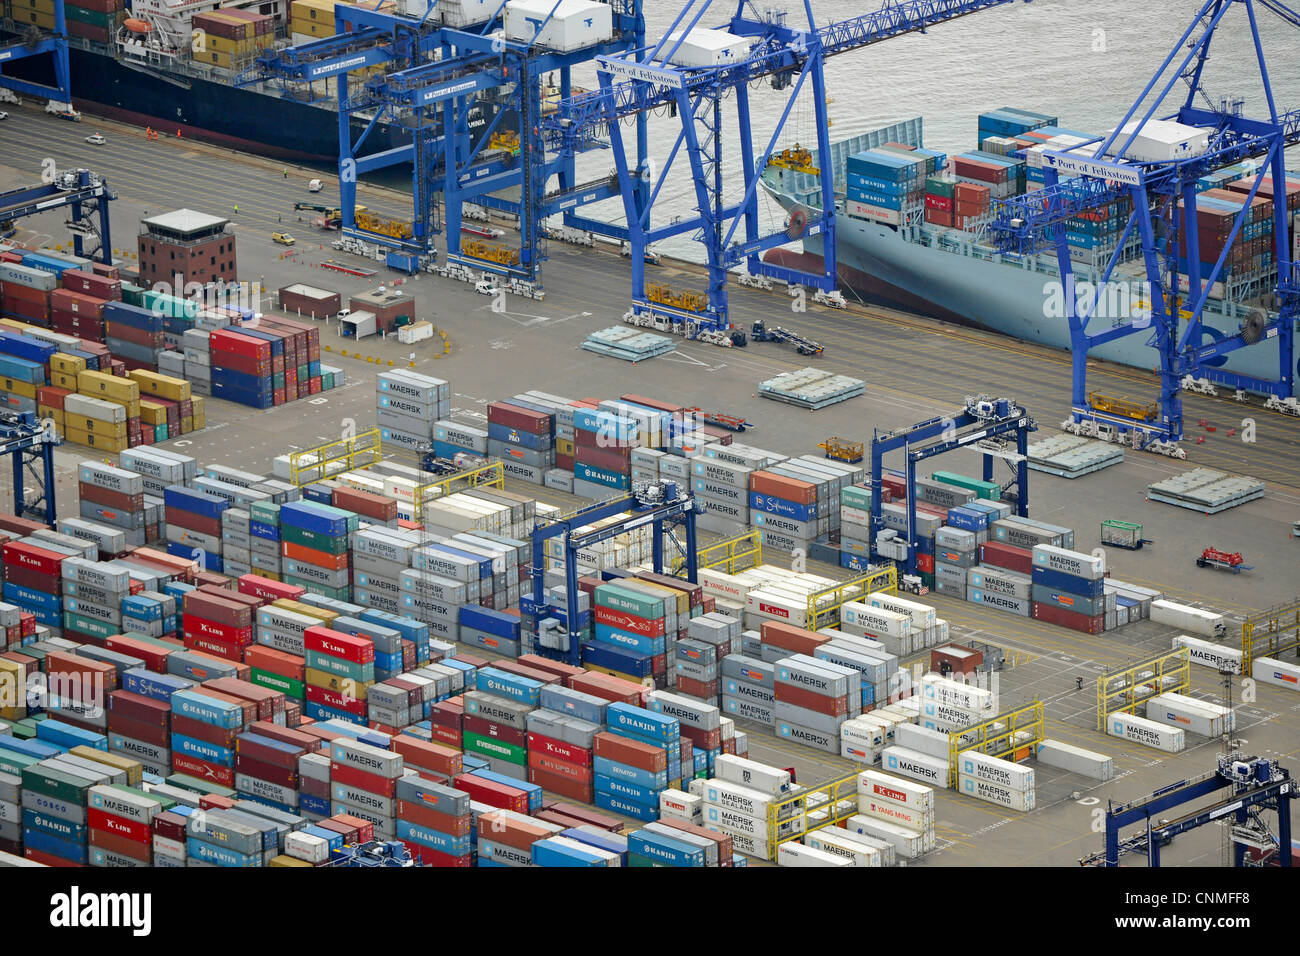 Aerial View showing containers in Felixstowe docks. - Stock Image